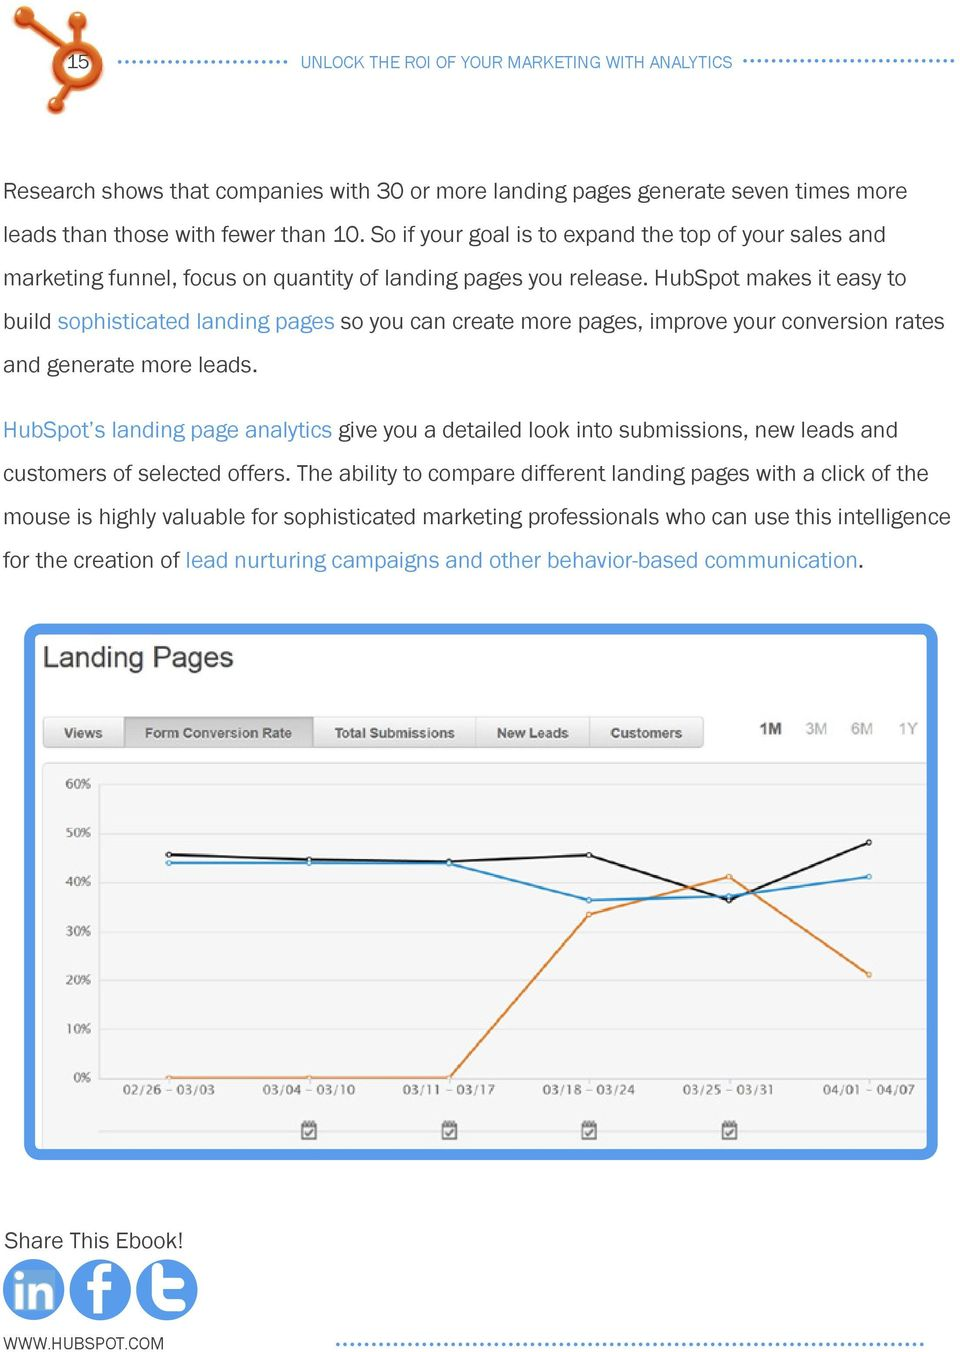 HubSpot makes it easy to build sophisticated landing pages so you can create more pages, improve your conversion rates and generate more leads.